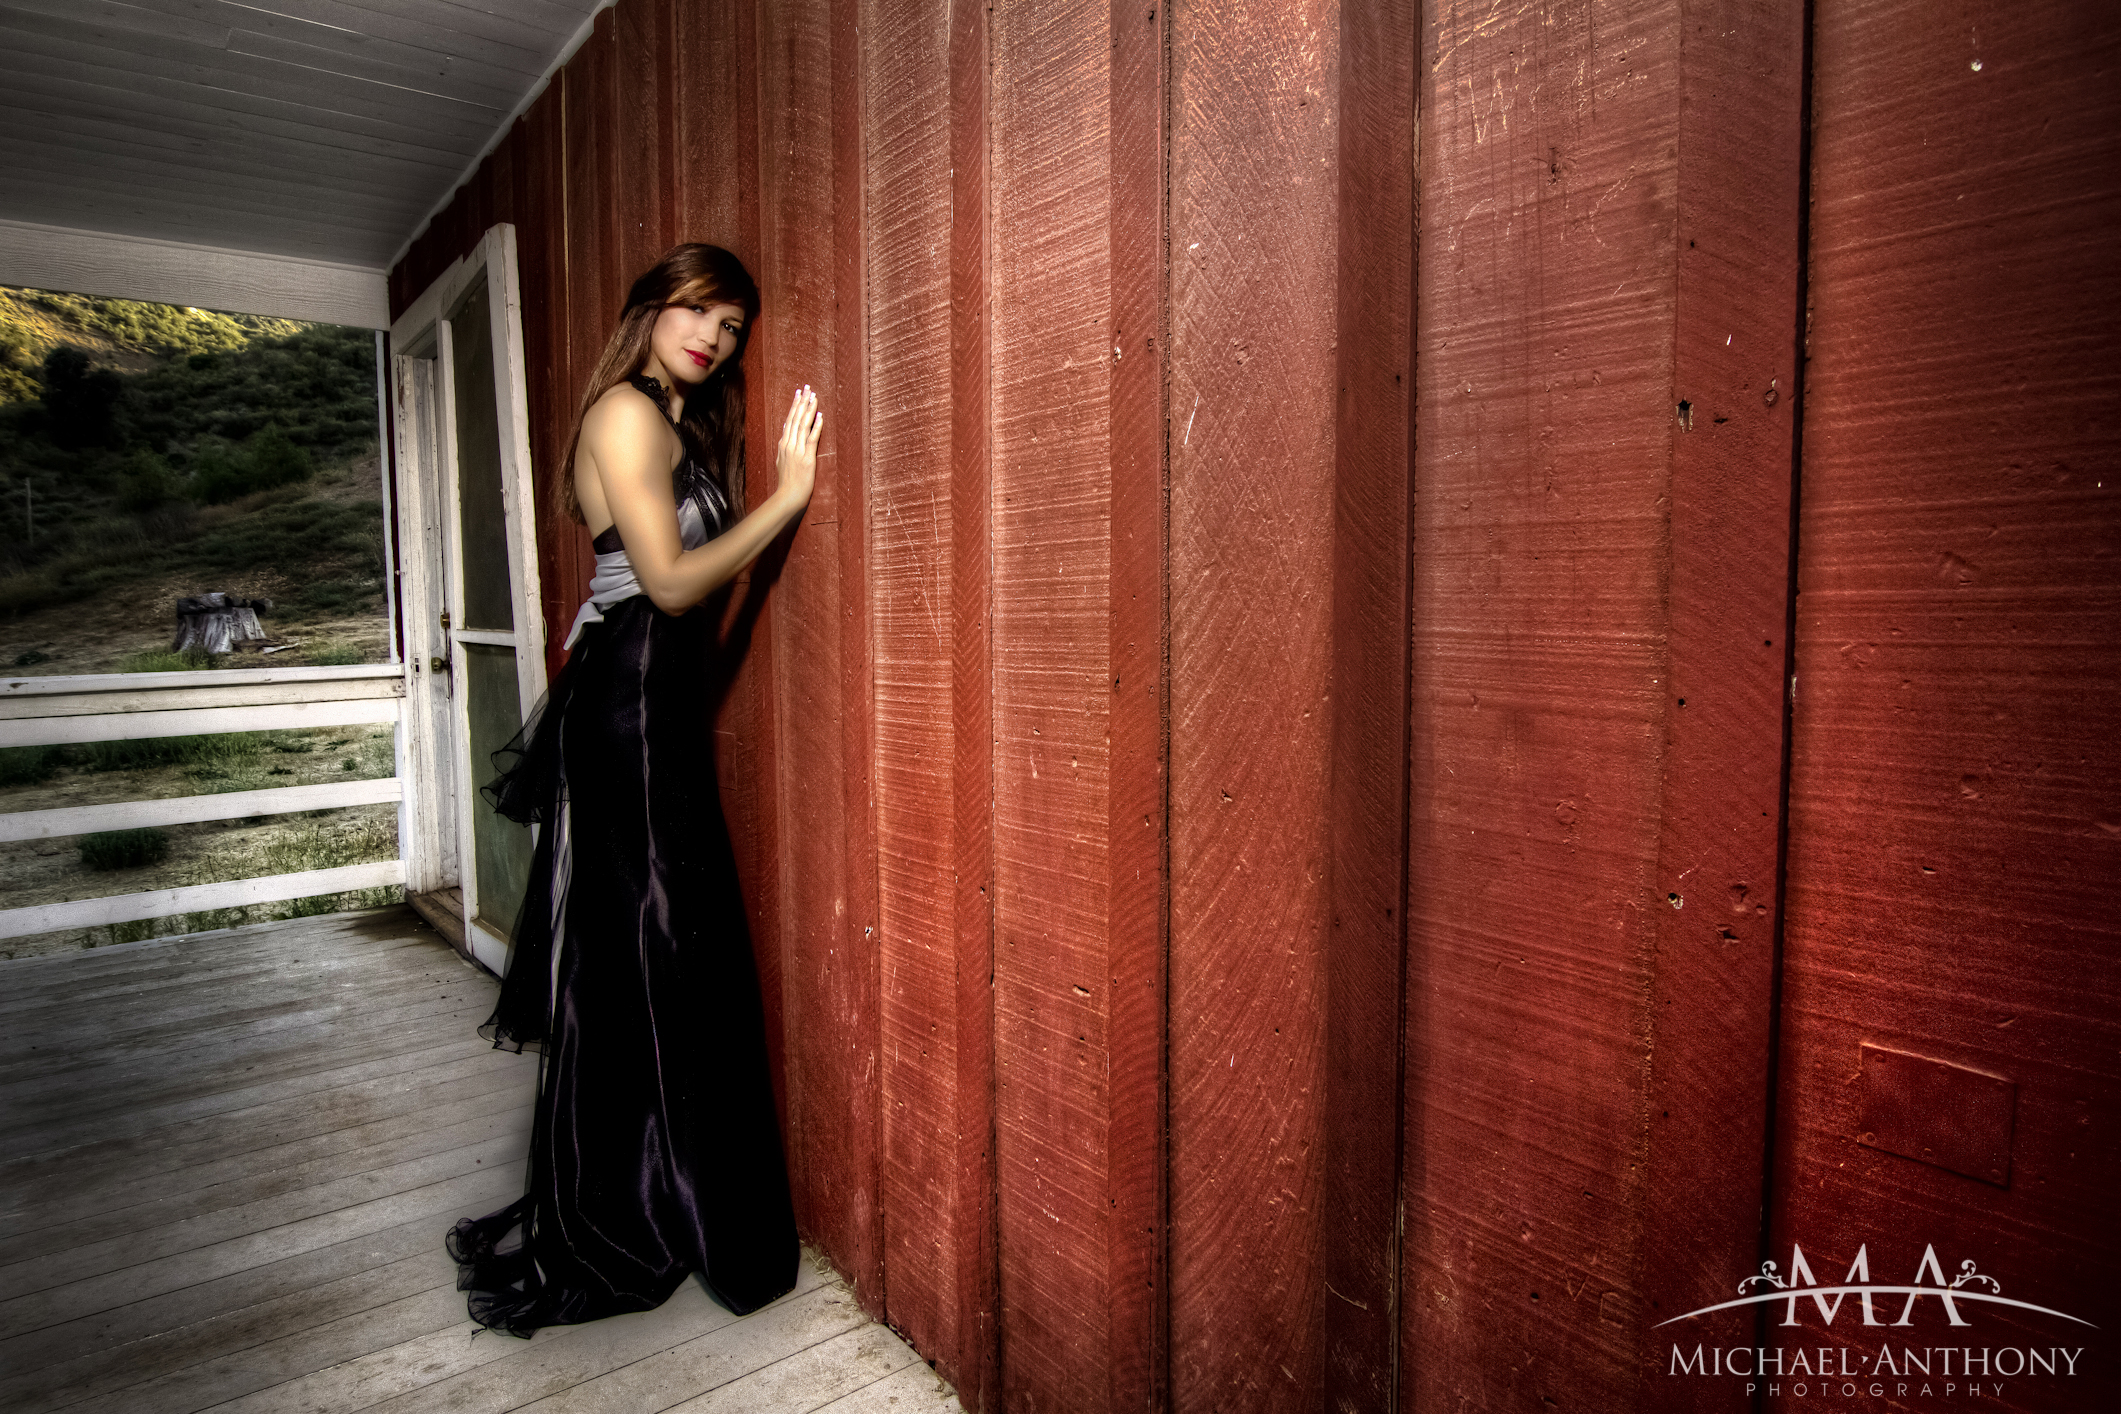 Los Angeles Fashion Photography, Mentryville, Santa Clarita Photography, Los Angeles